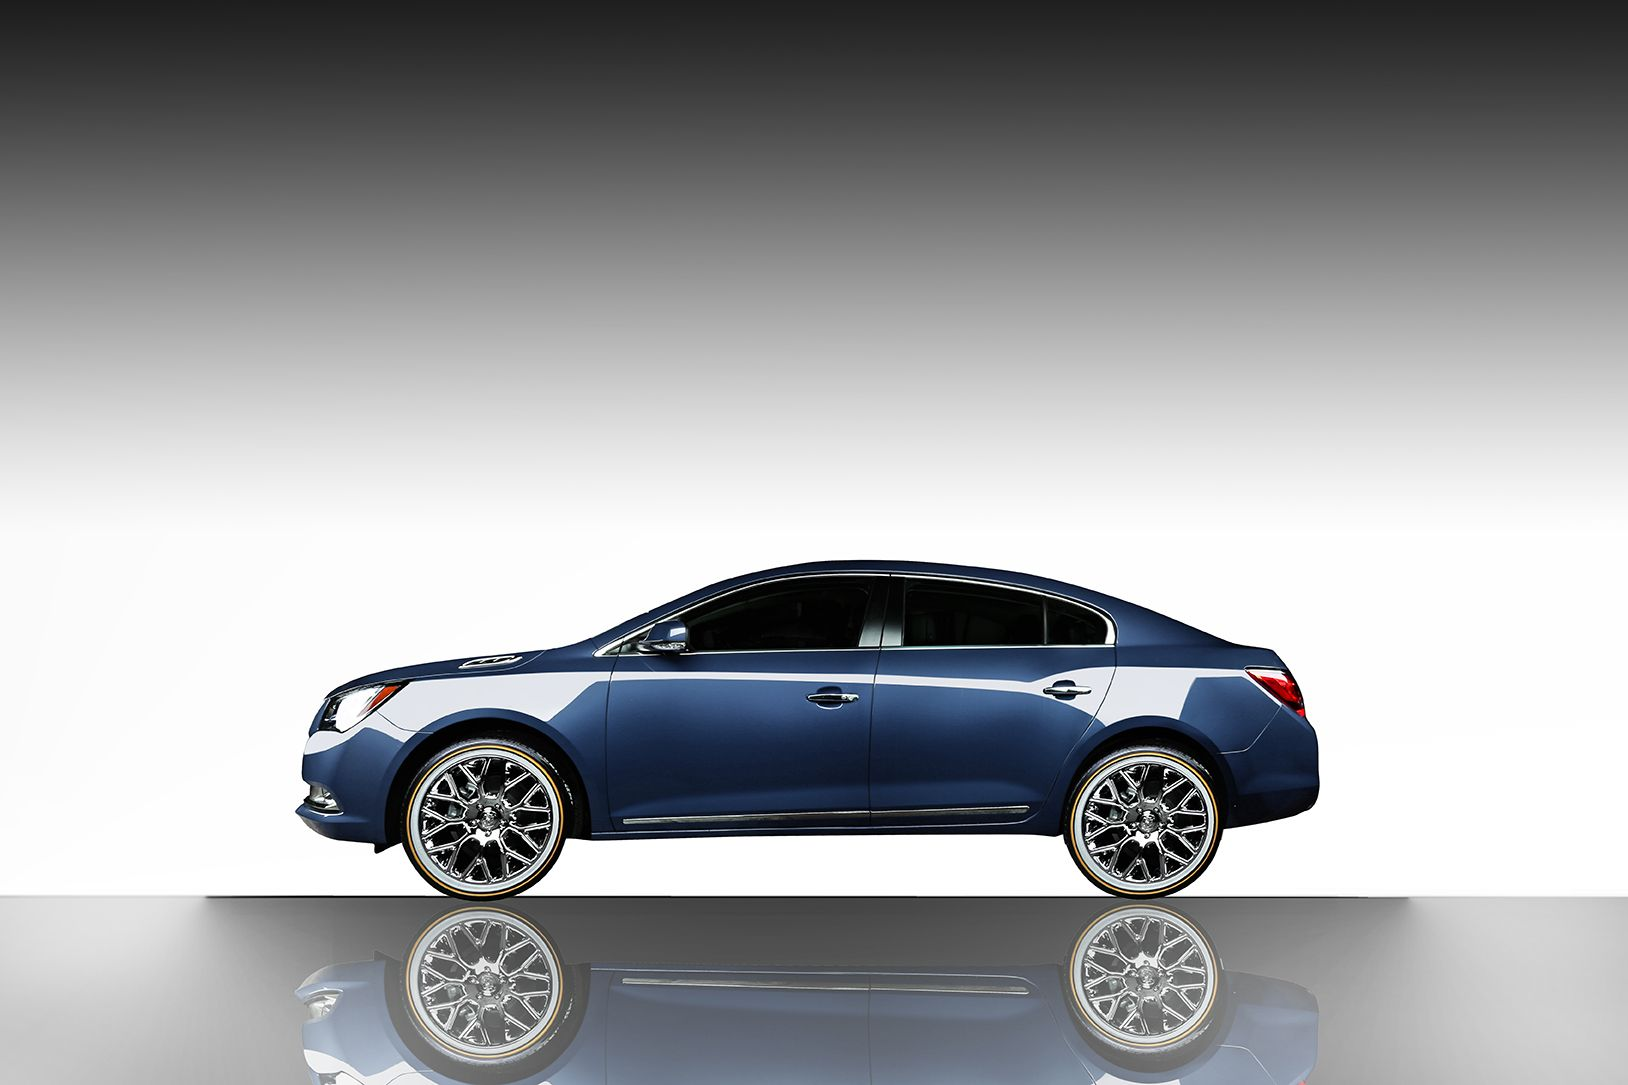 The Buick Lacrosse With Vogue S White Gold Sidewall Tyres Buick Lacrosse Buick Lacrosse